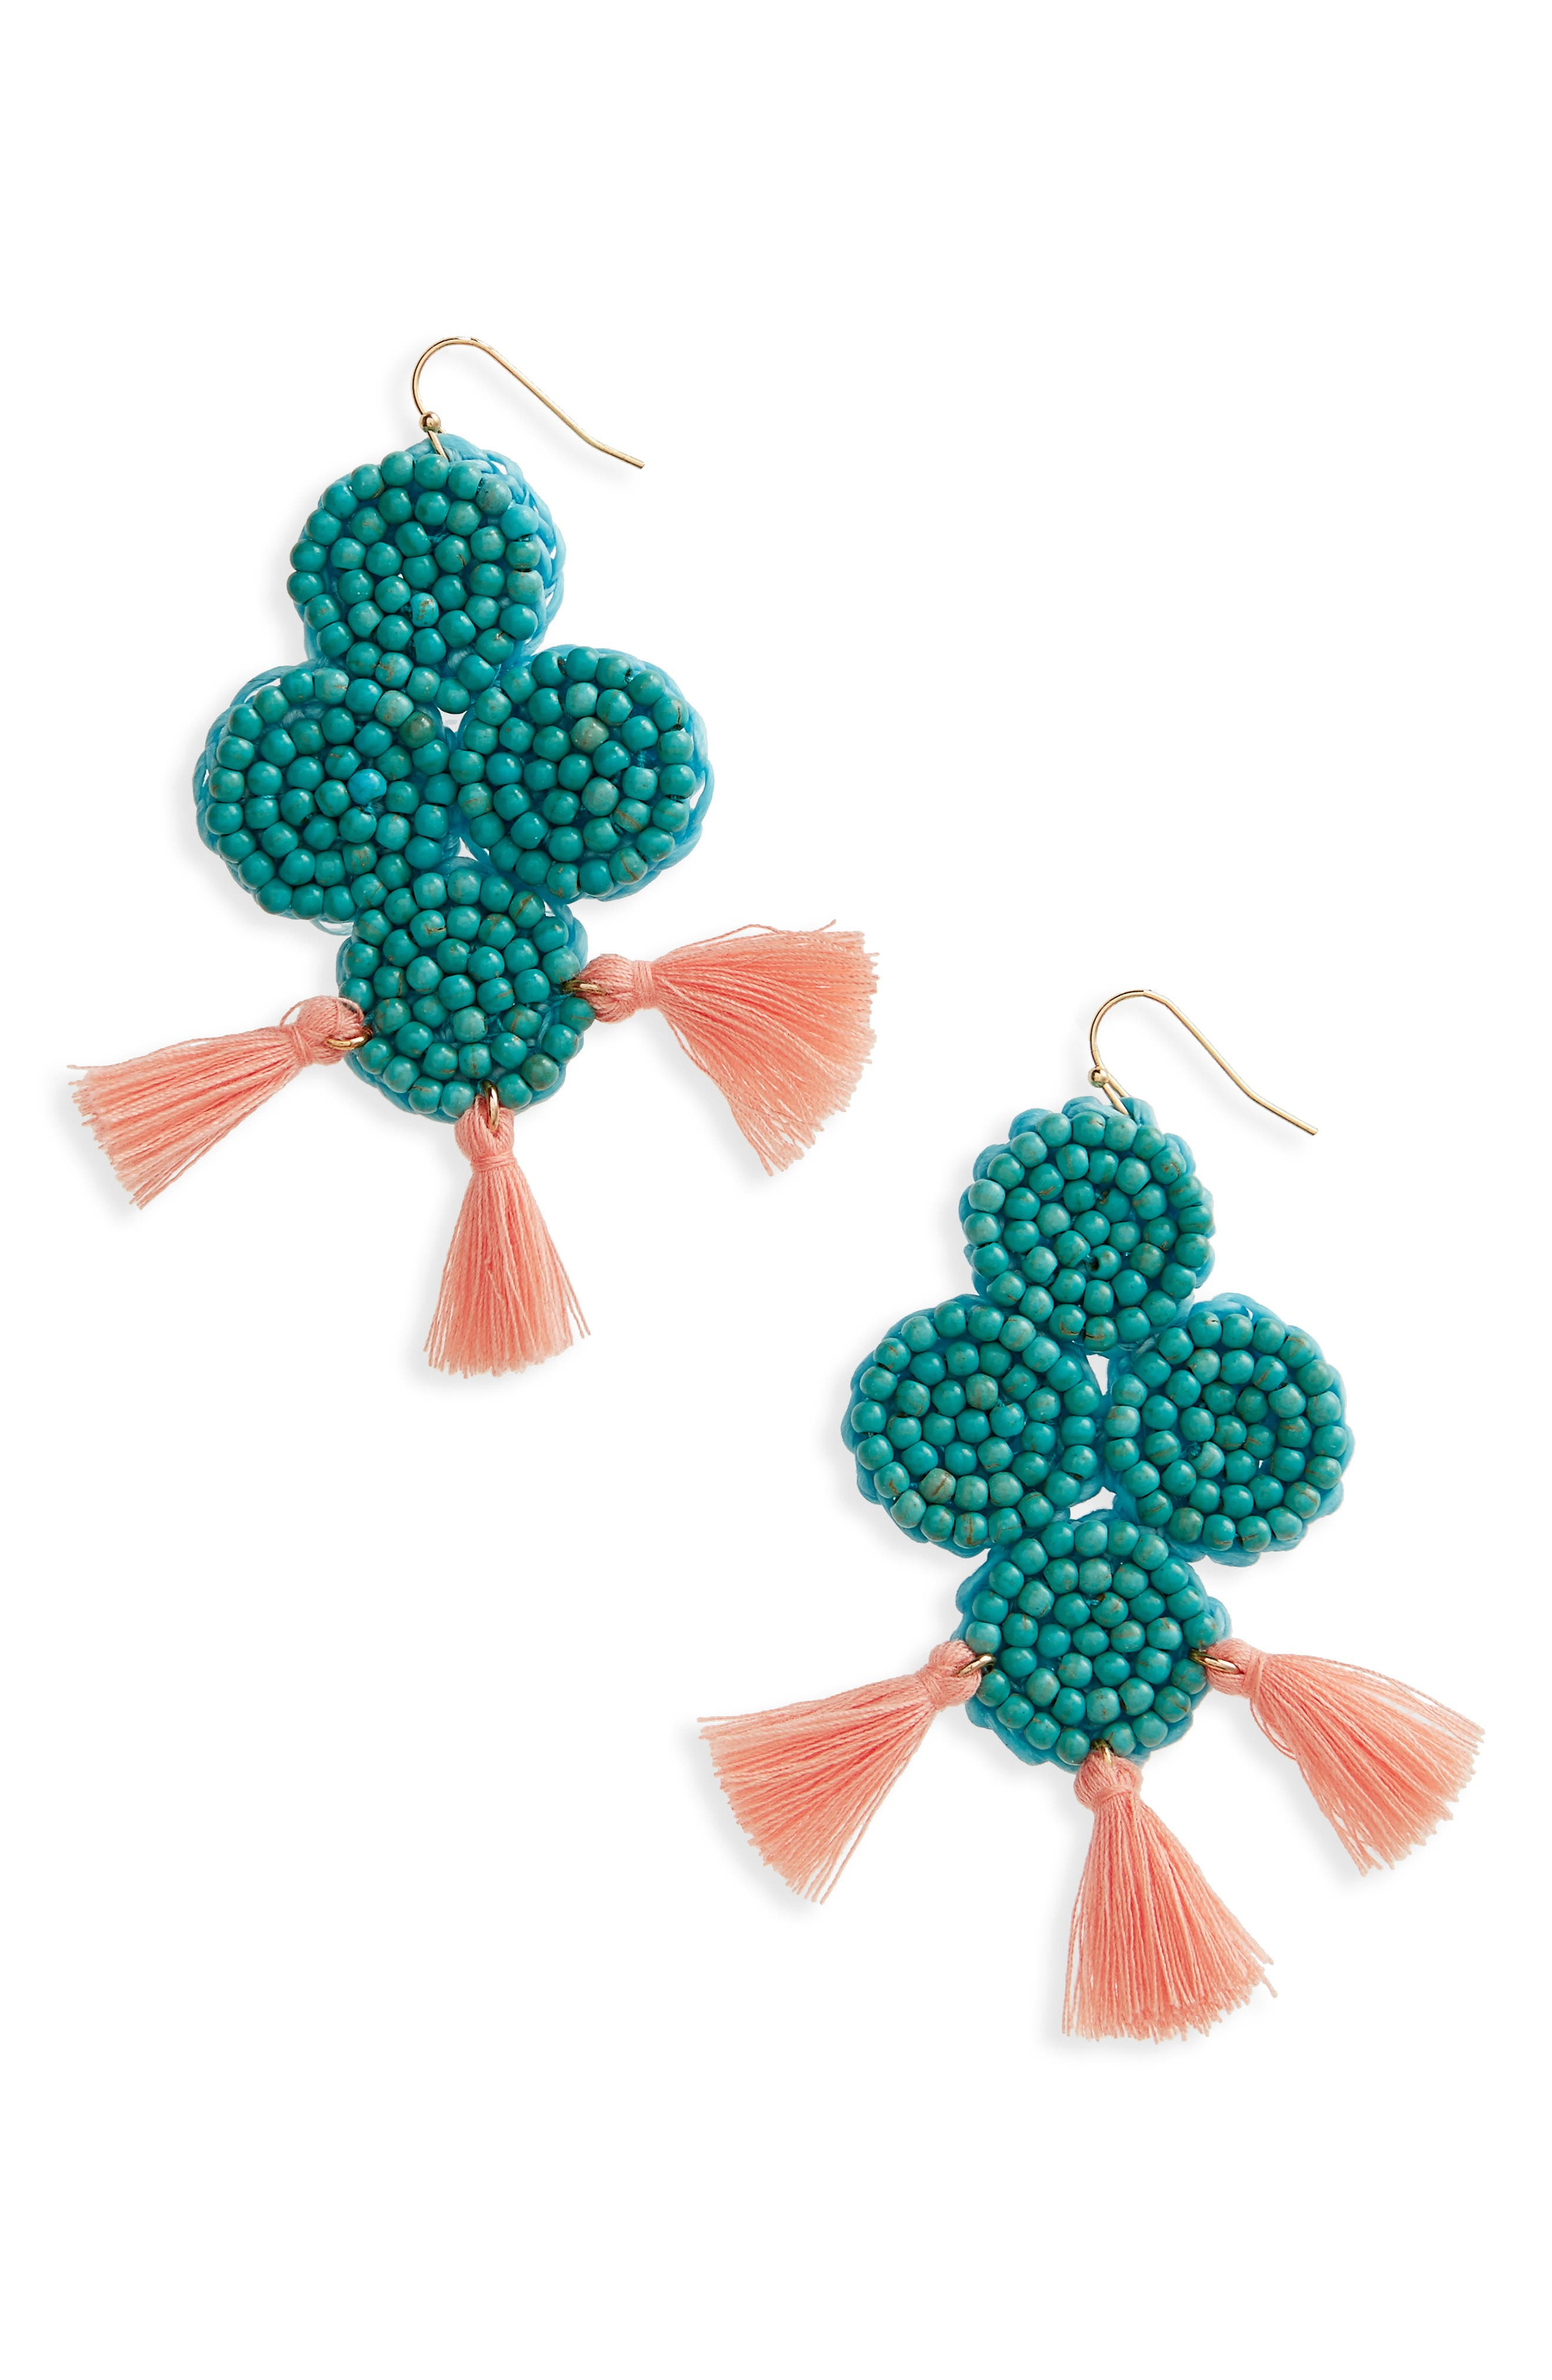 Beaded Statement Earrings,                             Main thumbnail 1, color,                             400